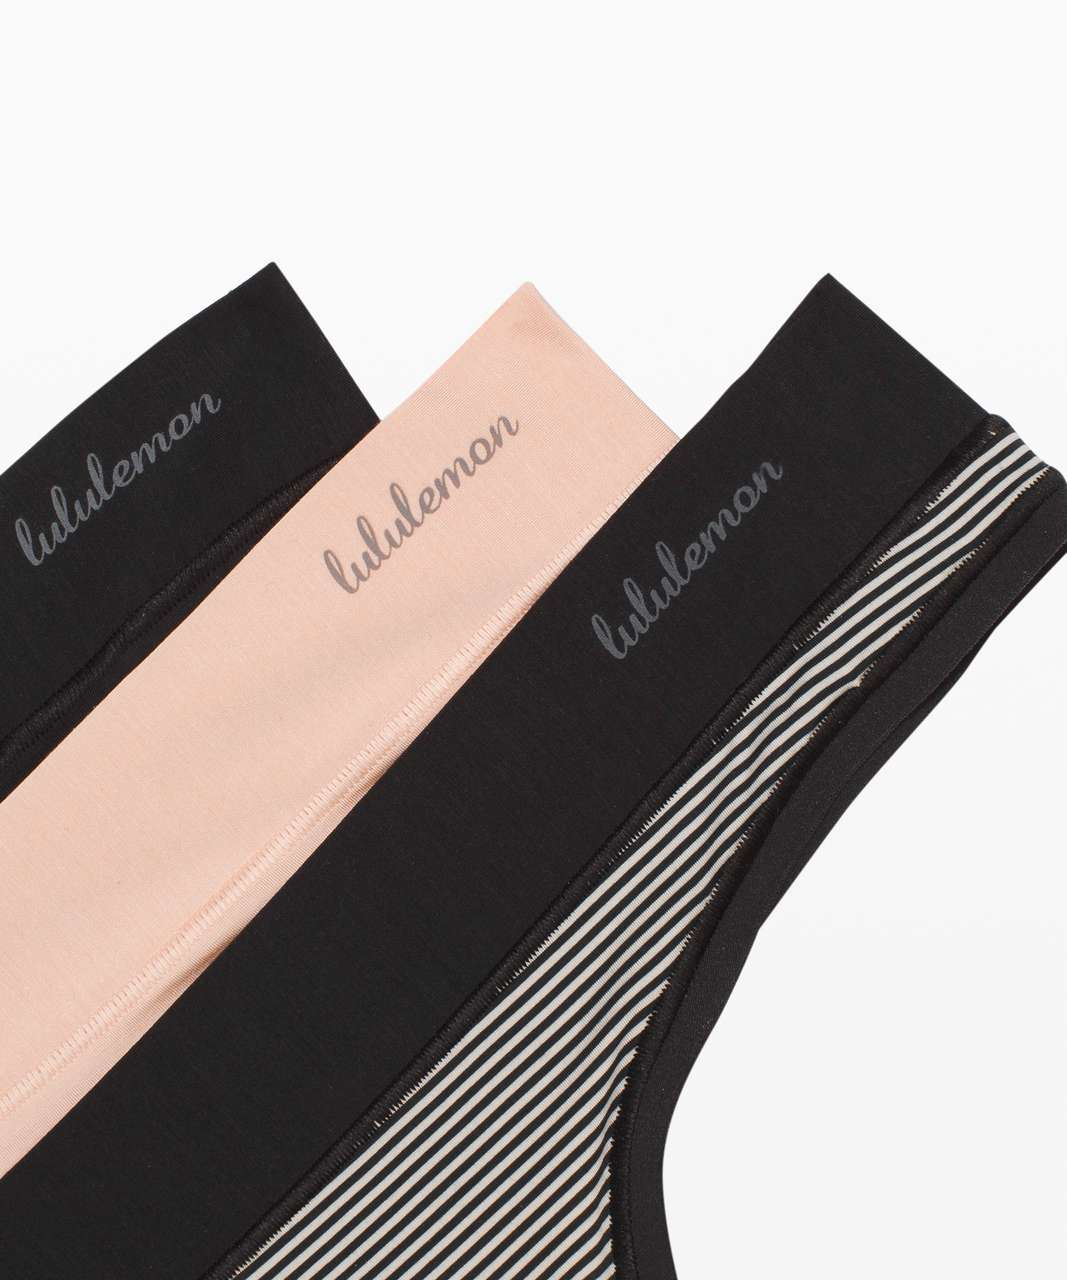 Lululemon Mula Bandhawear Thong *3 Pack - Black / Misty Shell / Black